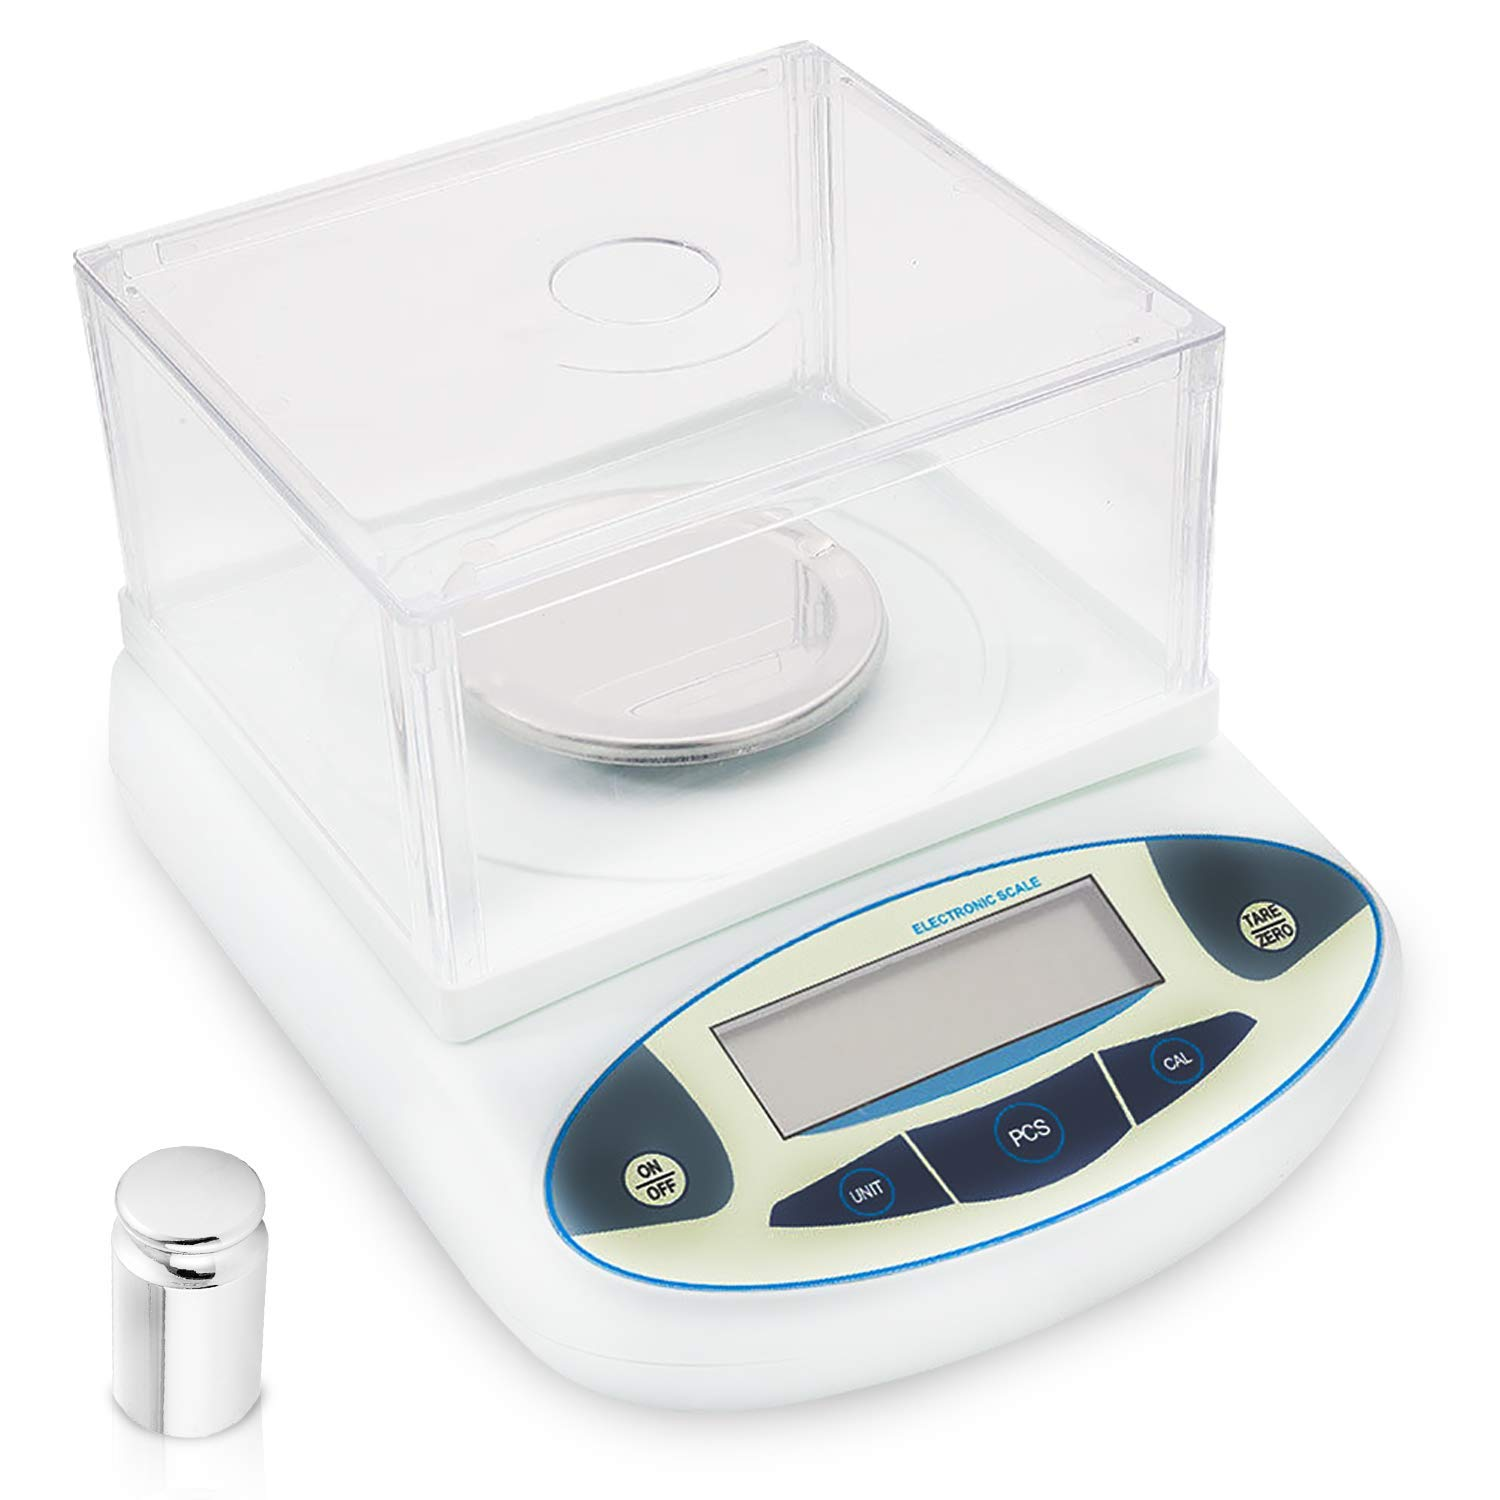 300g x 0.001g Scientific Lab Scale 1 mg High Precision Electronic Laboratory Scale Analytical Balance LCD Digital Analytic Instrument with Wind Shield 200g Calibration Weight and Power Adapter